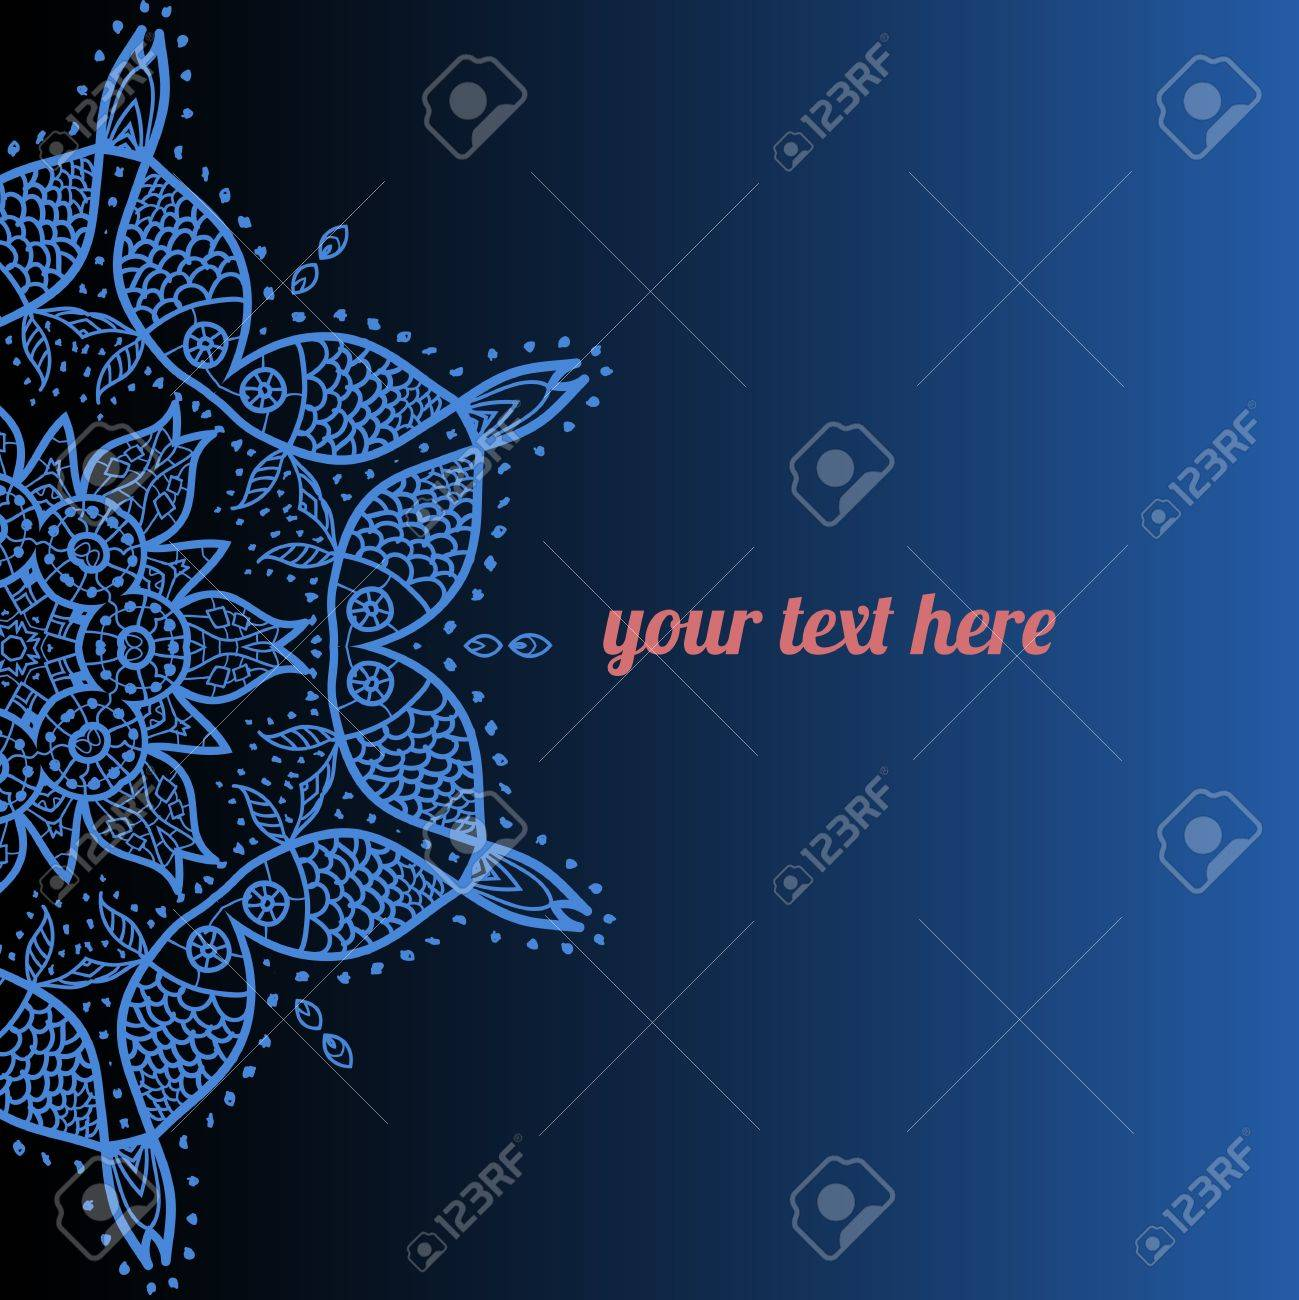 Blue ornate frame with sample text  Perfect as invitation or announcement  All pieces are separate  Easy to change colors and edit Stock Vector - 18471799